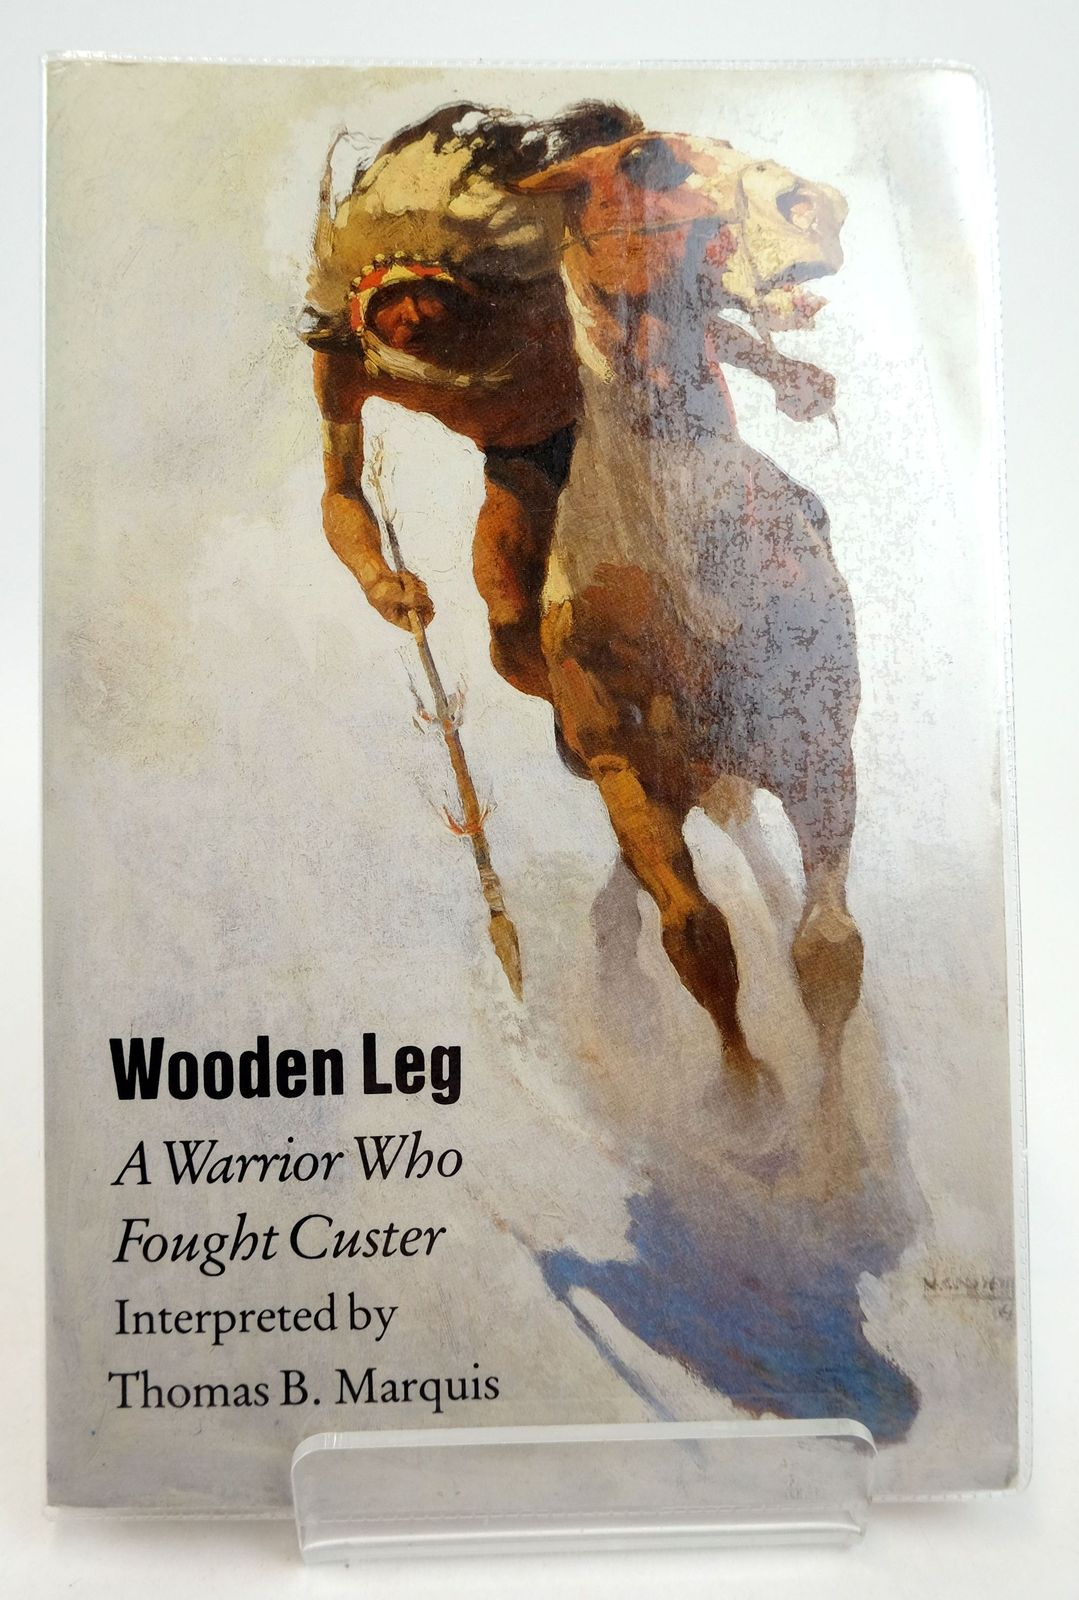 Photo of WOODEN LEG: A WARRIOR WHO FOUGHT CUSTER written by Marquis, Thomas published by University of Nebraska, Bison Books (STOCK CODE: 1819268)  for sale by Stella & Rose's Books